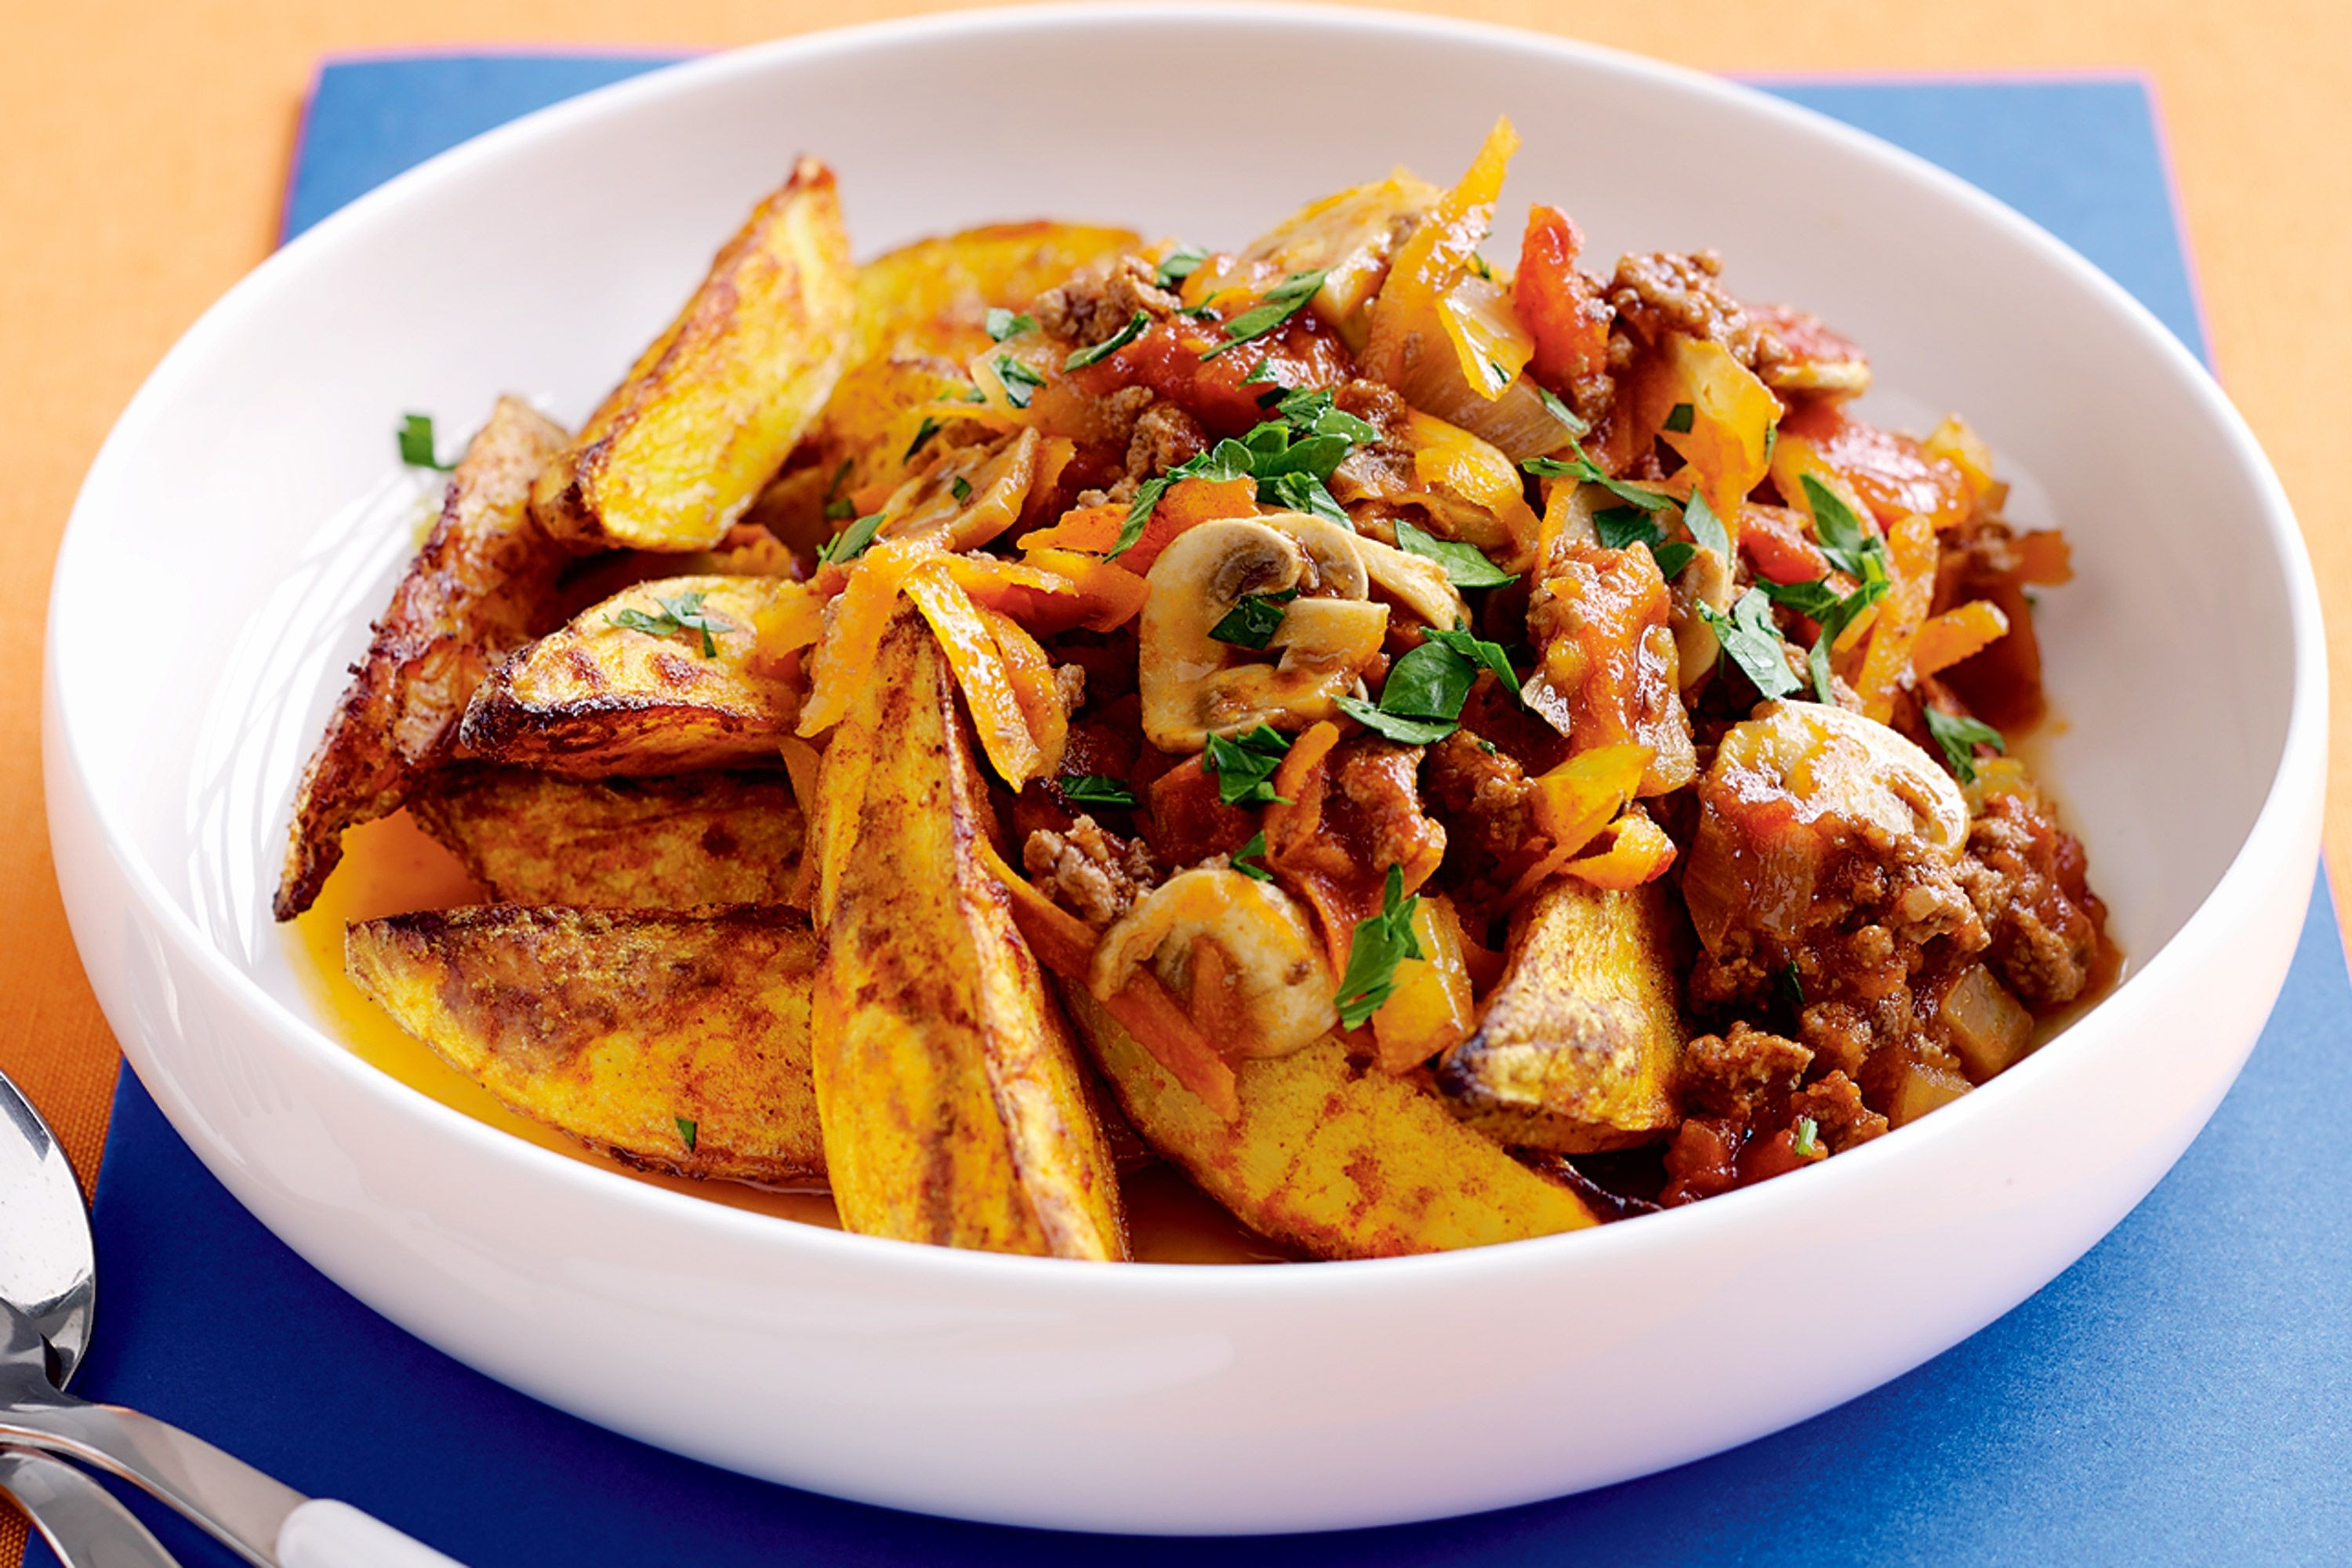 savoury-mince-and-potato-wedges-69231-1